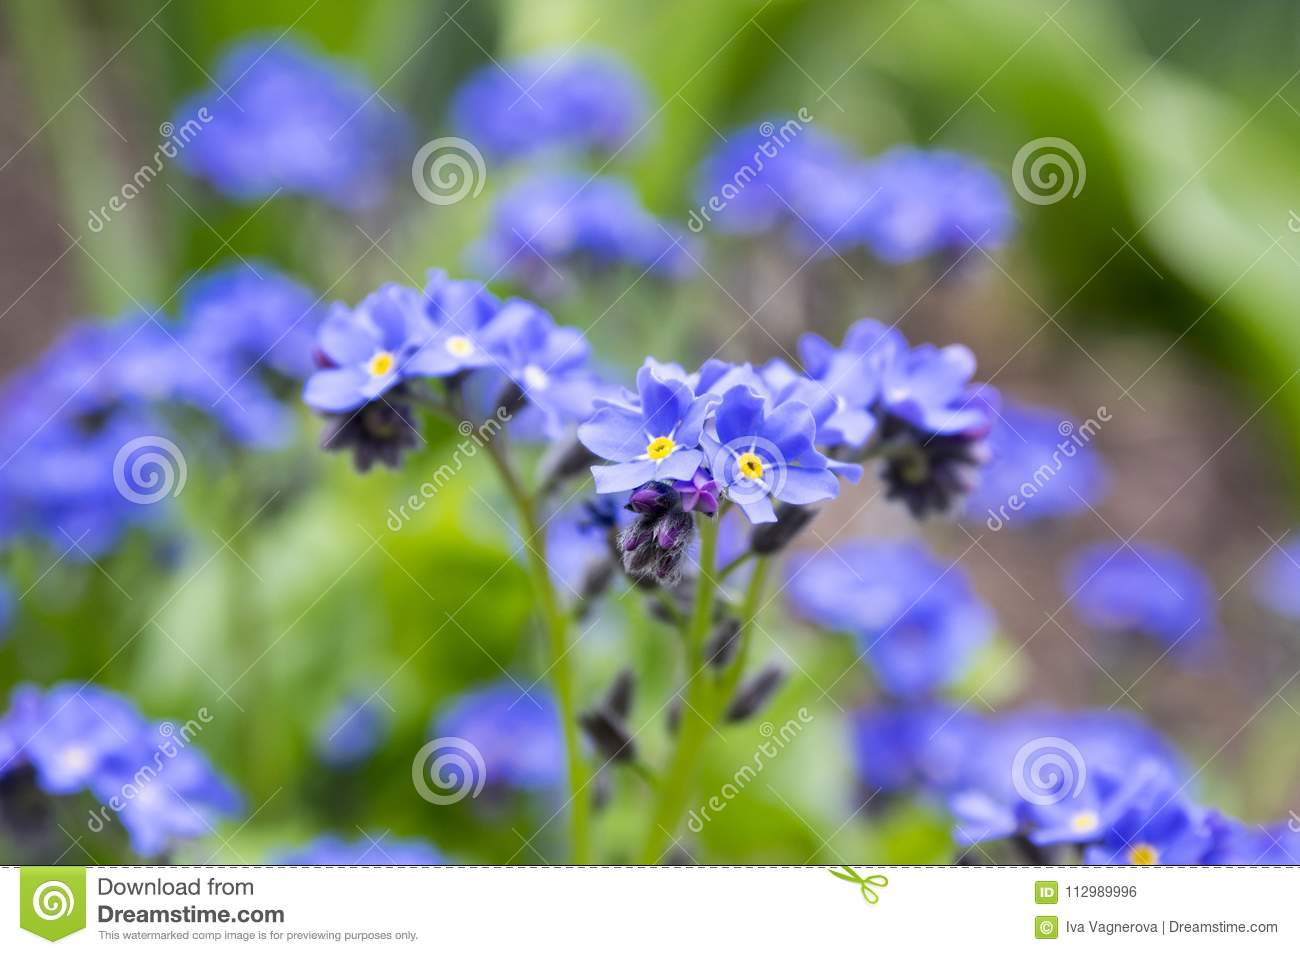 Myosotis Sylvatica Blue Flower In Bloom Stock Photo Image Of Flora